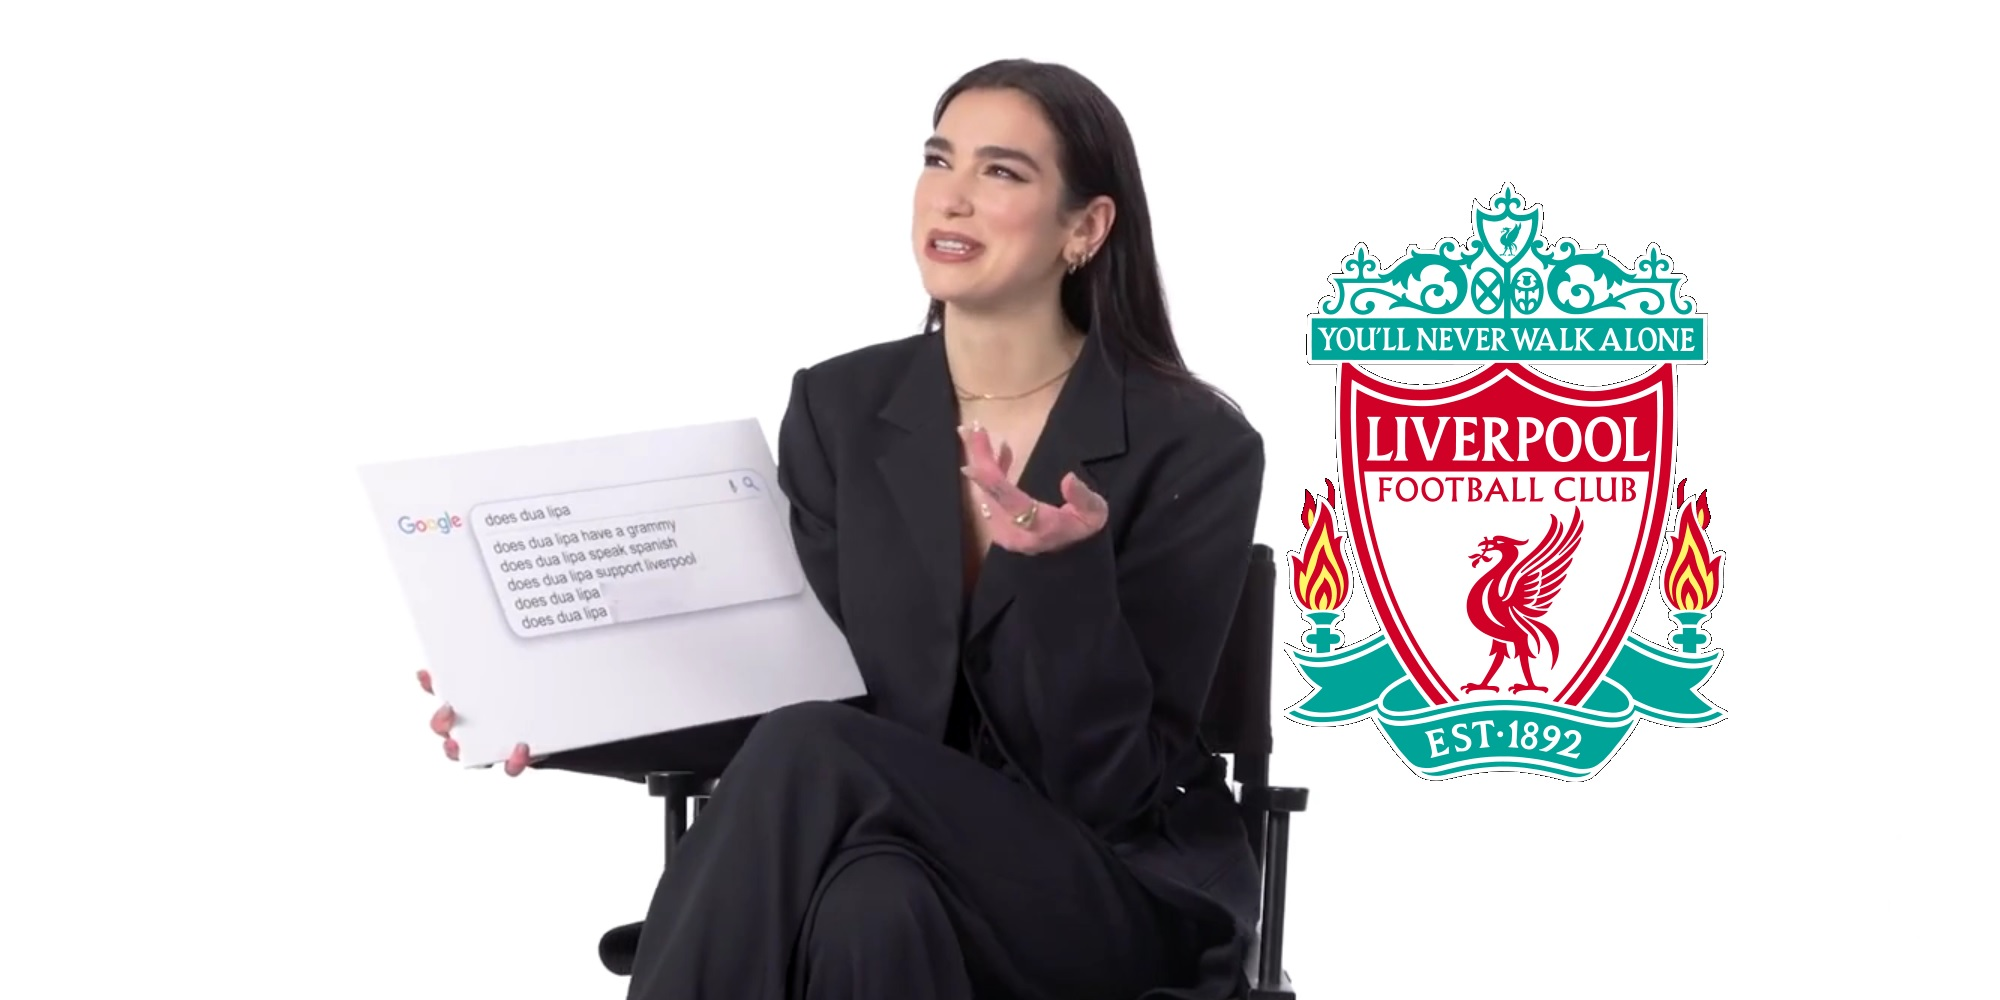 """(Video) Popstar Dua Lipa confirms Liverpool has a """"special place in my heart"""""""